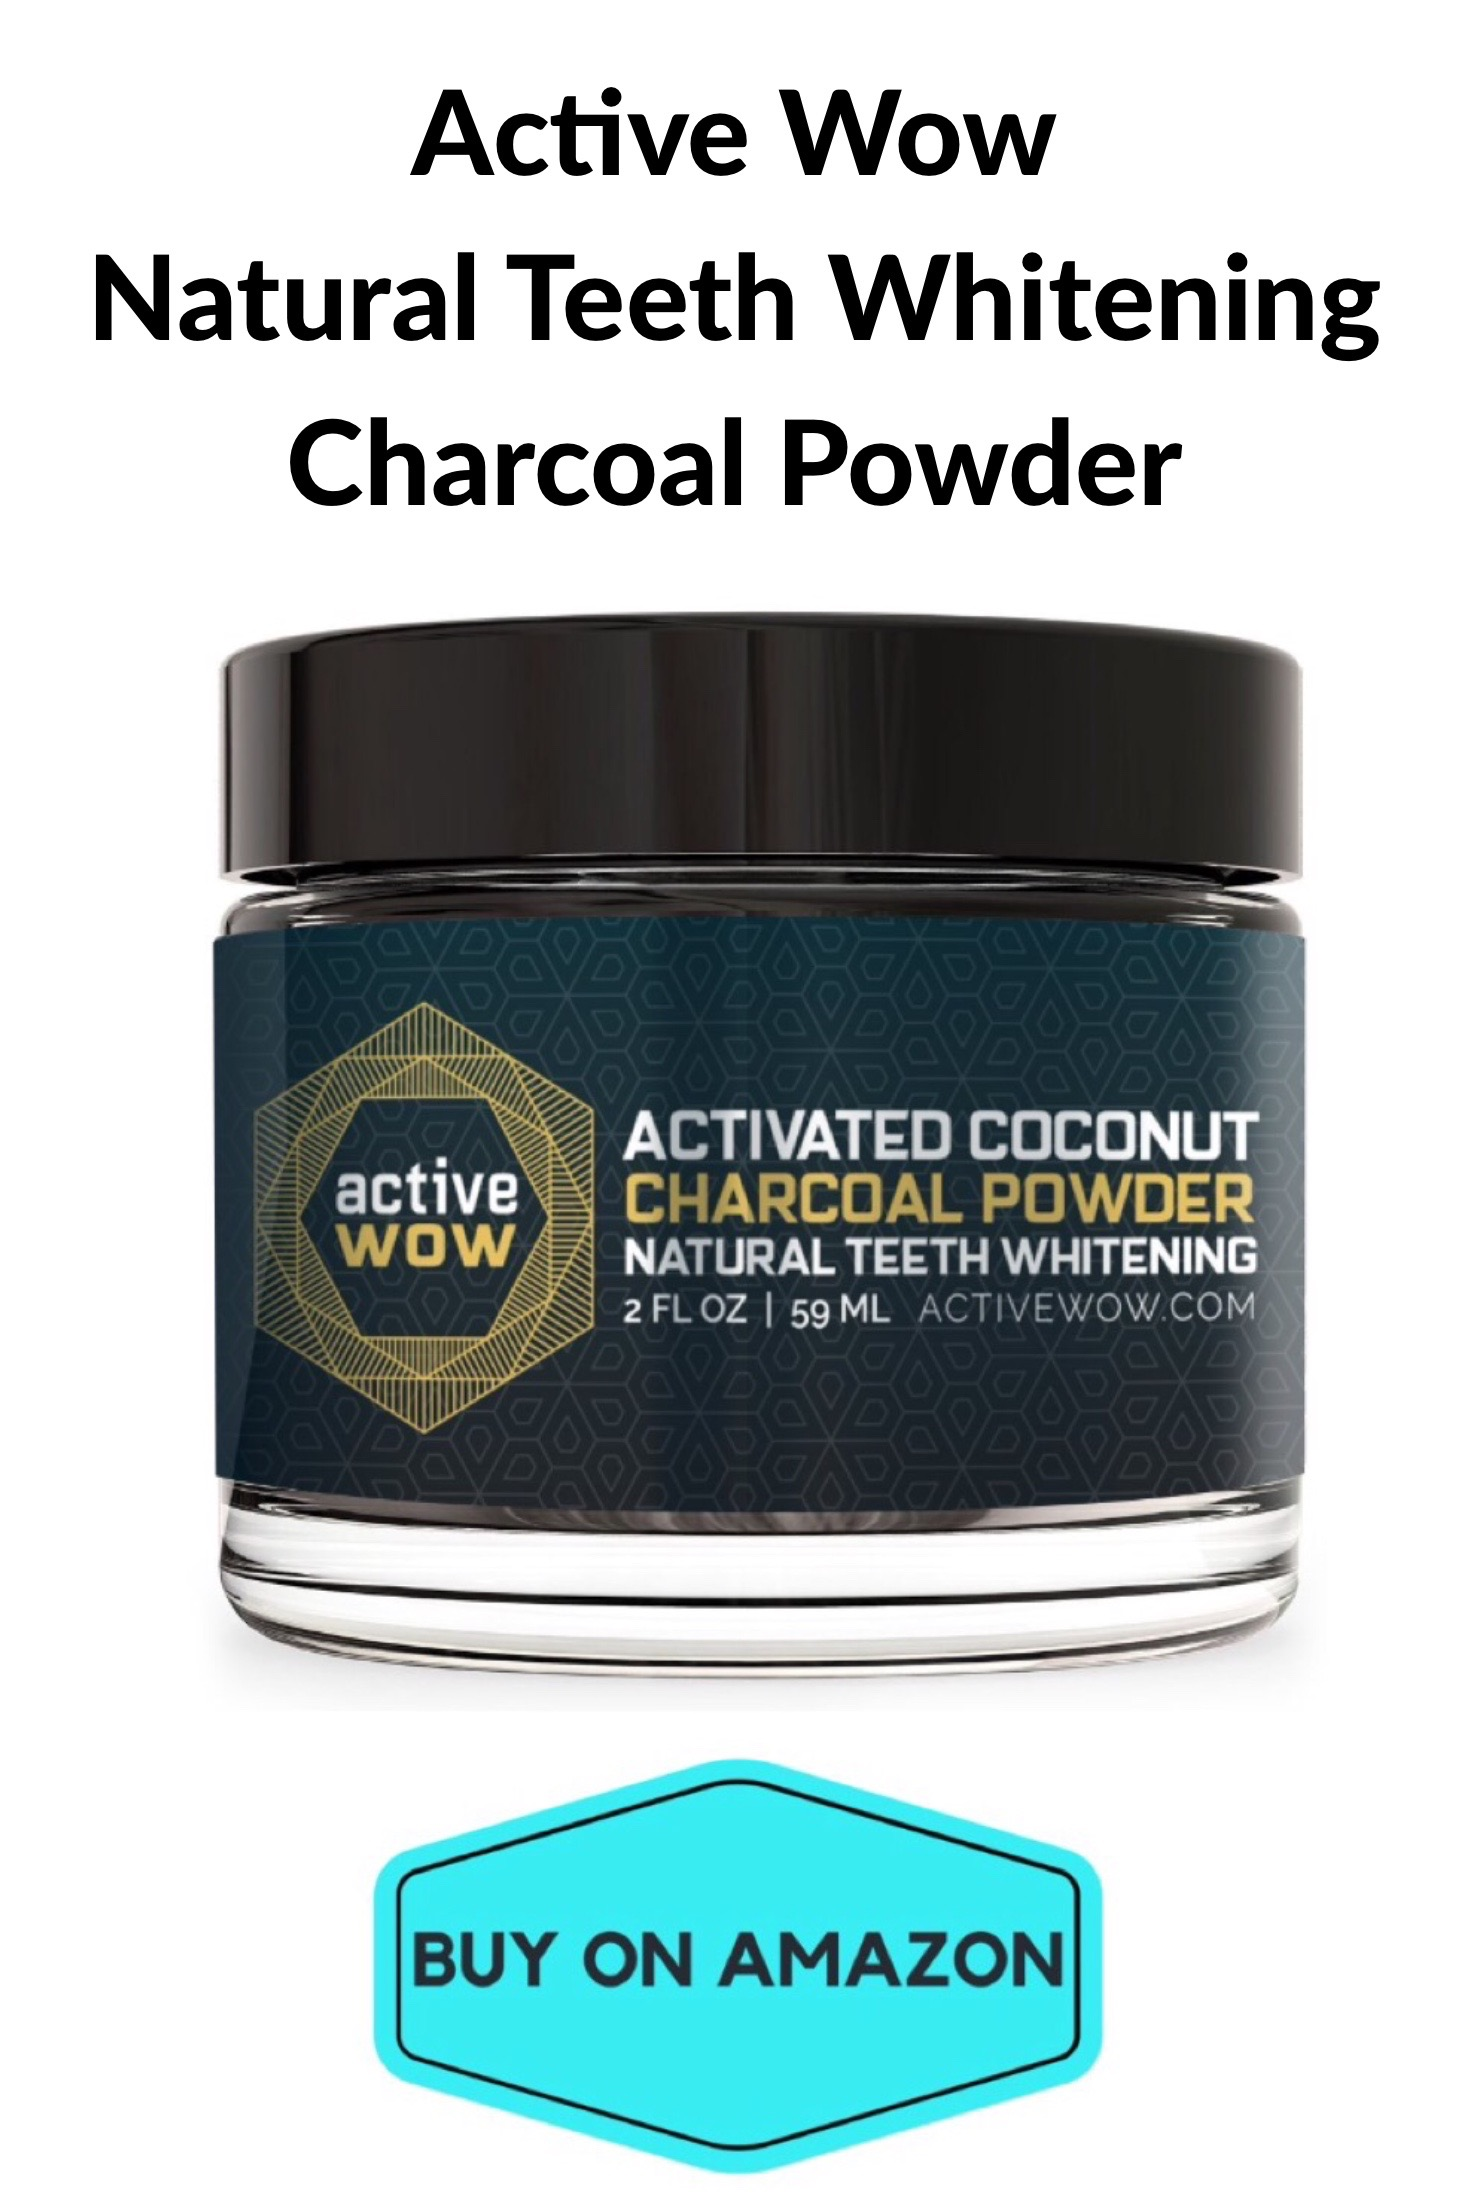 Active Wow Natural Teeth Whitening Charcoal Powder